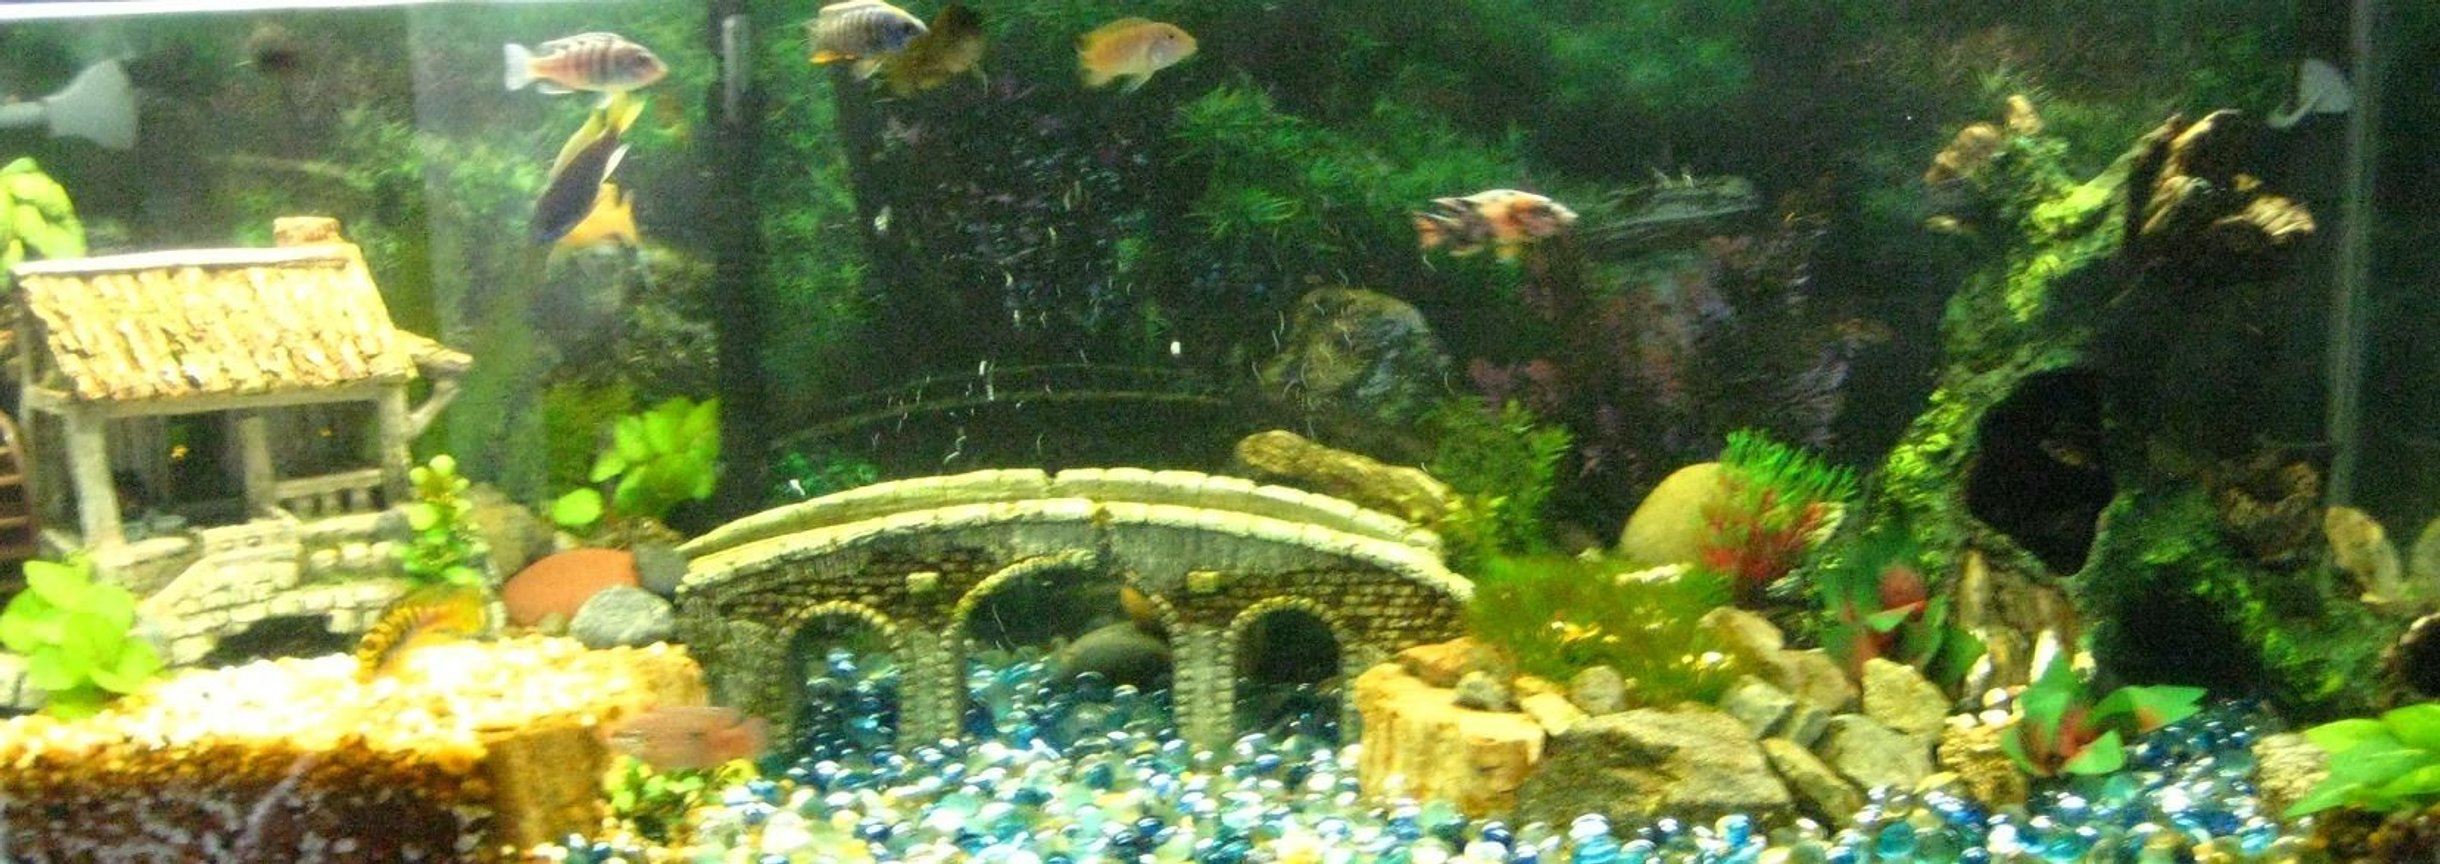 50 gallons freshwater fish tank (mostly fish and non-living decorations) - 50 gal african cichlid tank 11 fish in total several different species from lake malawi 60 gal total filtration